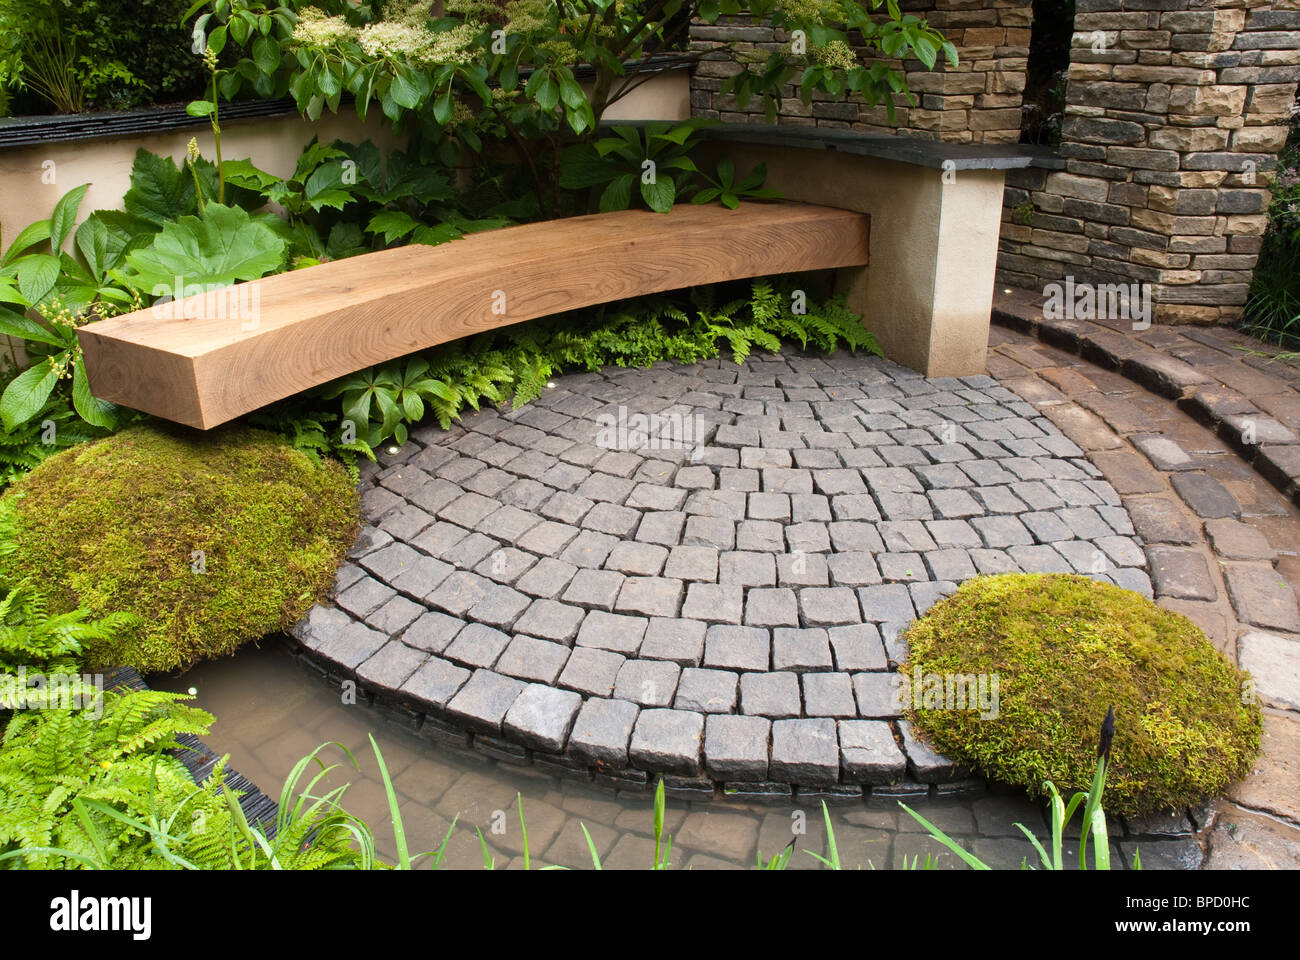 Swell Garden Bench And Stone Patio In Circular Curves With Moss Pdpeps Interior Chair Design Pdpepsorg